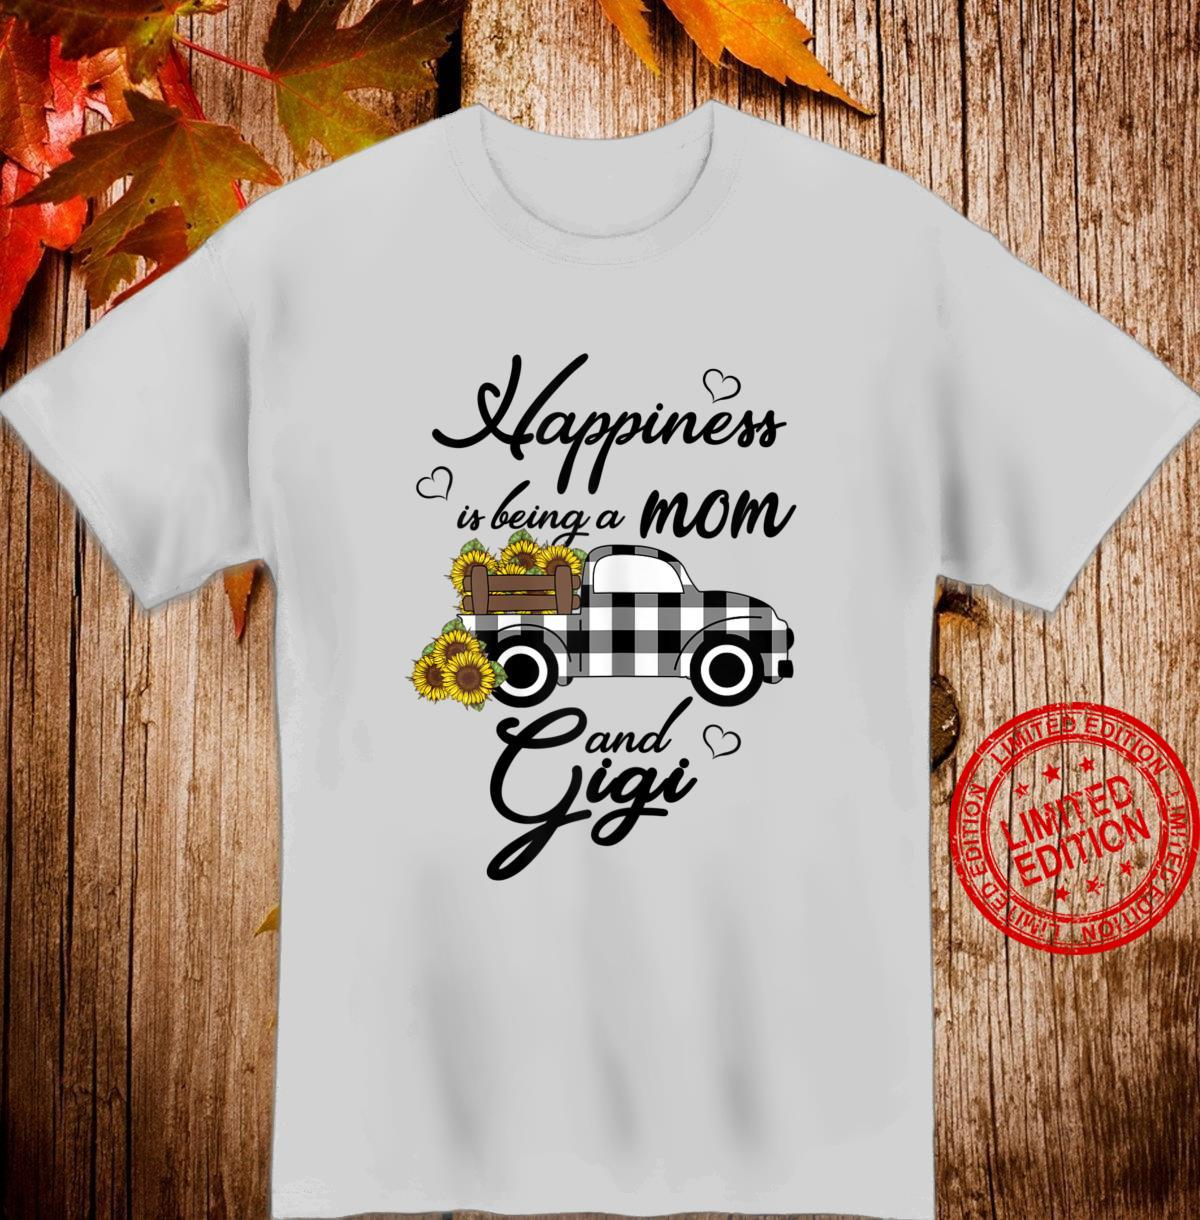 Womens Sunflower Grandma Shirt Happiness is being a Mom and Gigi Shirt